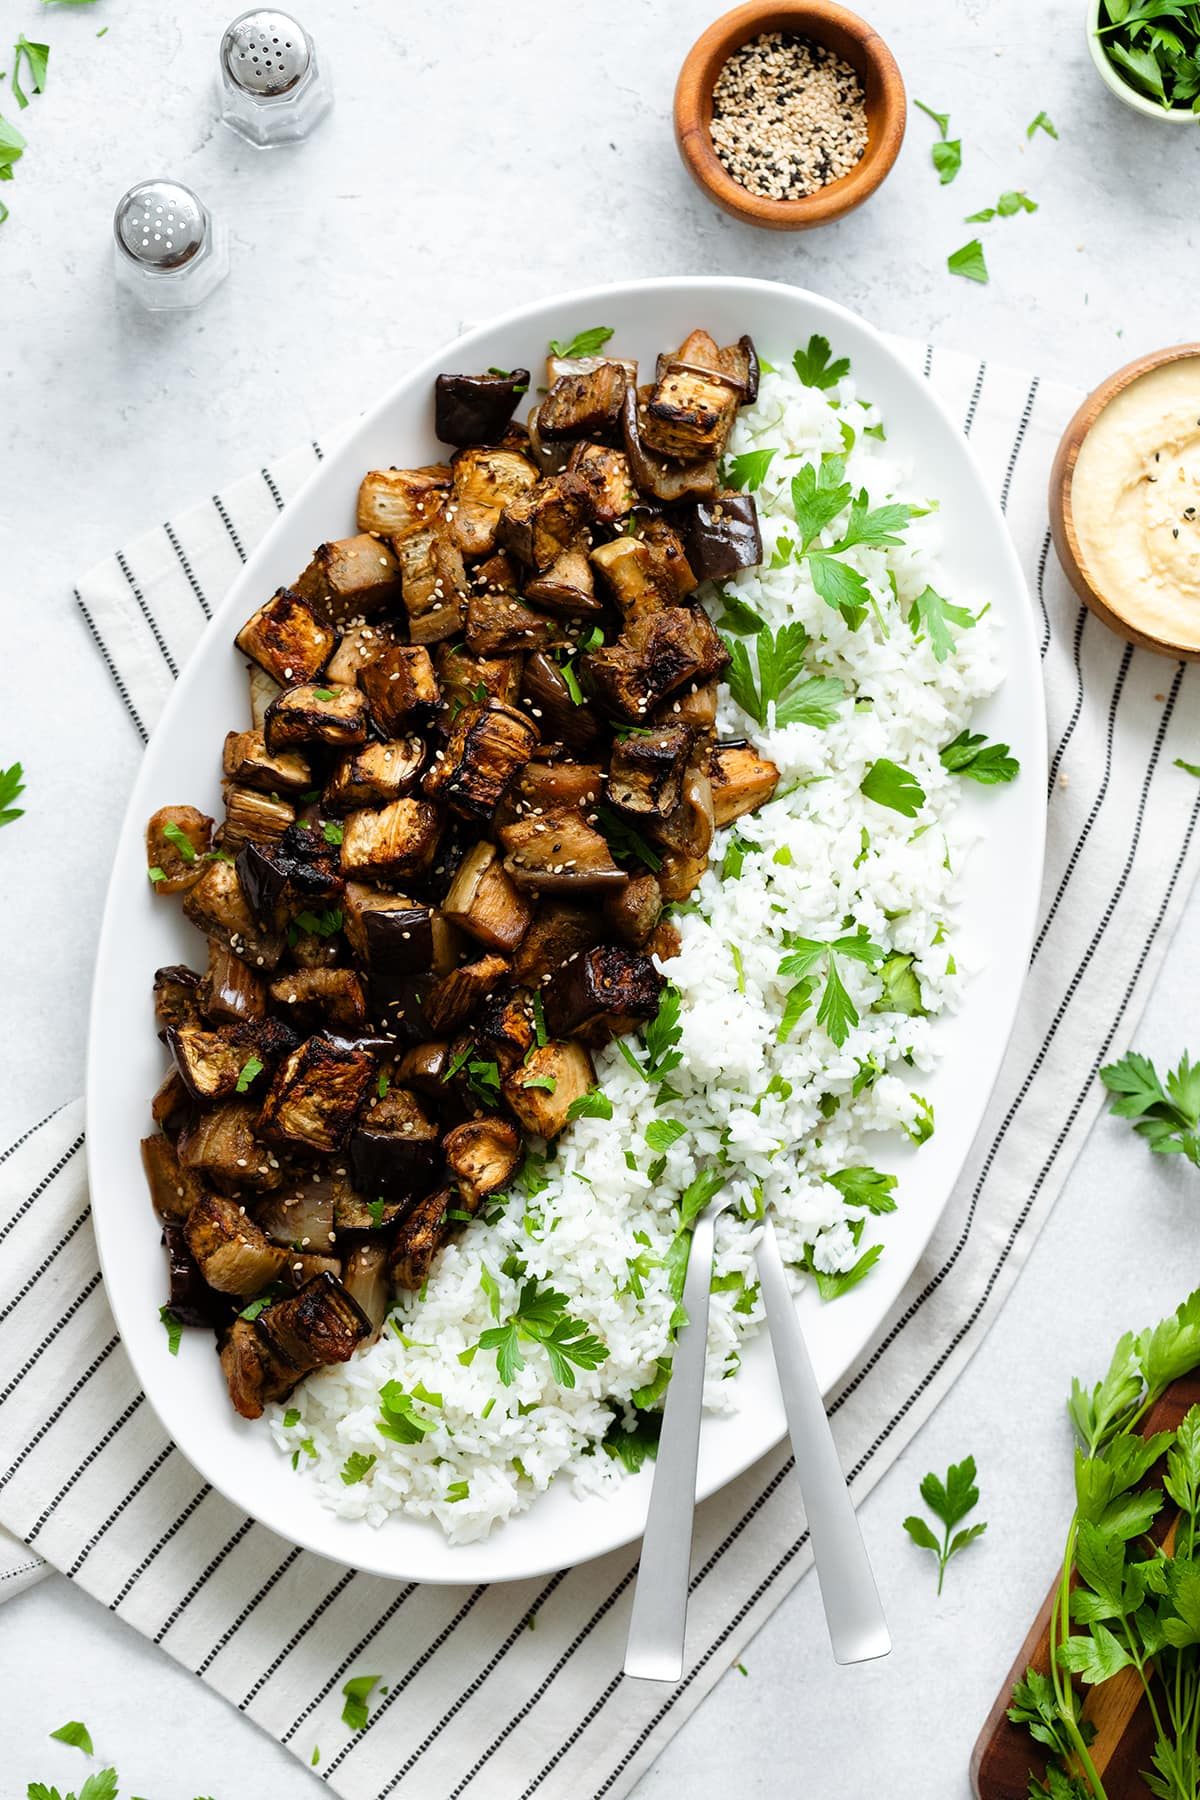 Spicy Garlic Miso Roasted Eggplant with white basmati rice and a sprinkle of parsley on a big oval plate